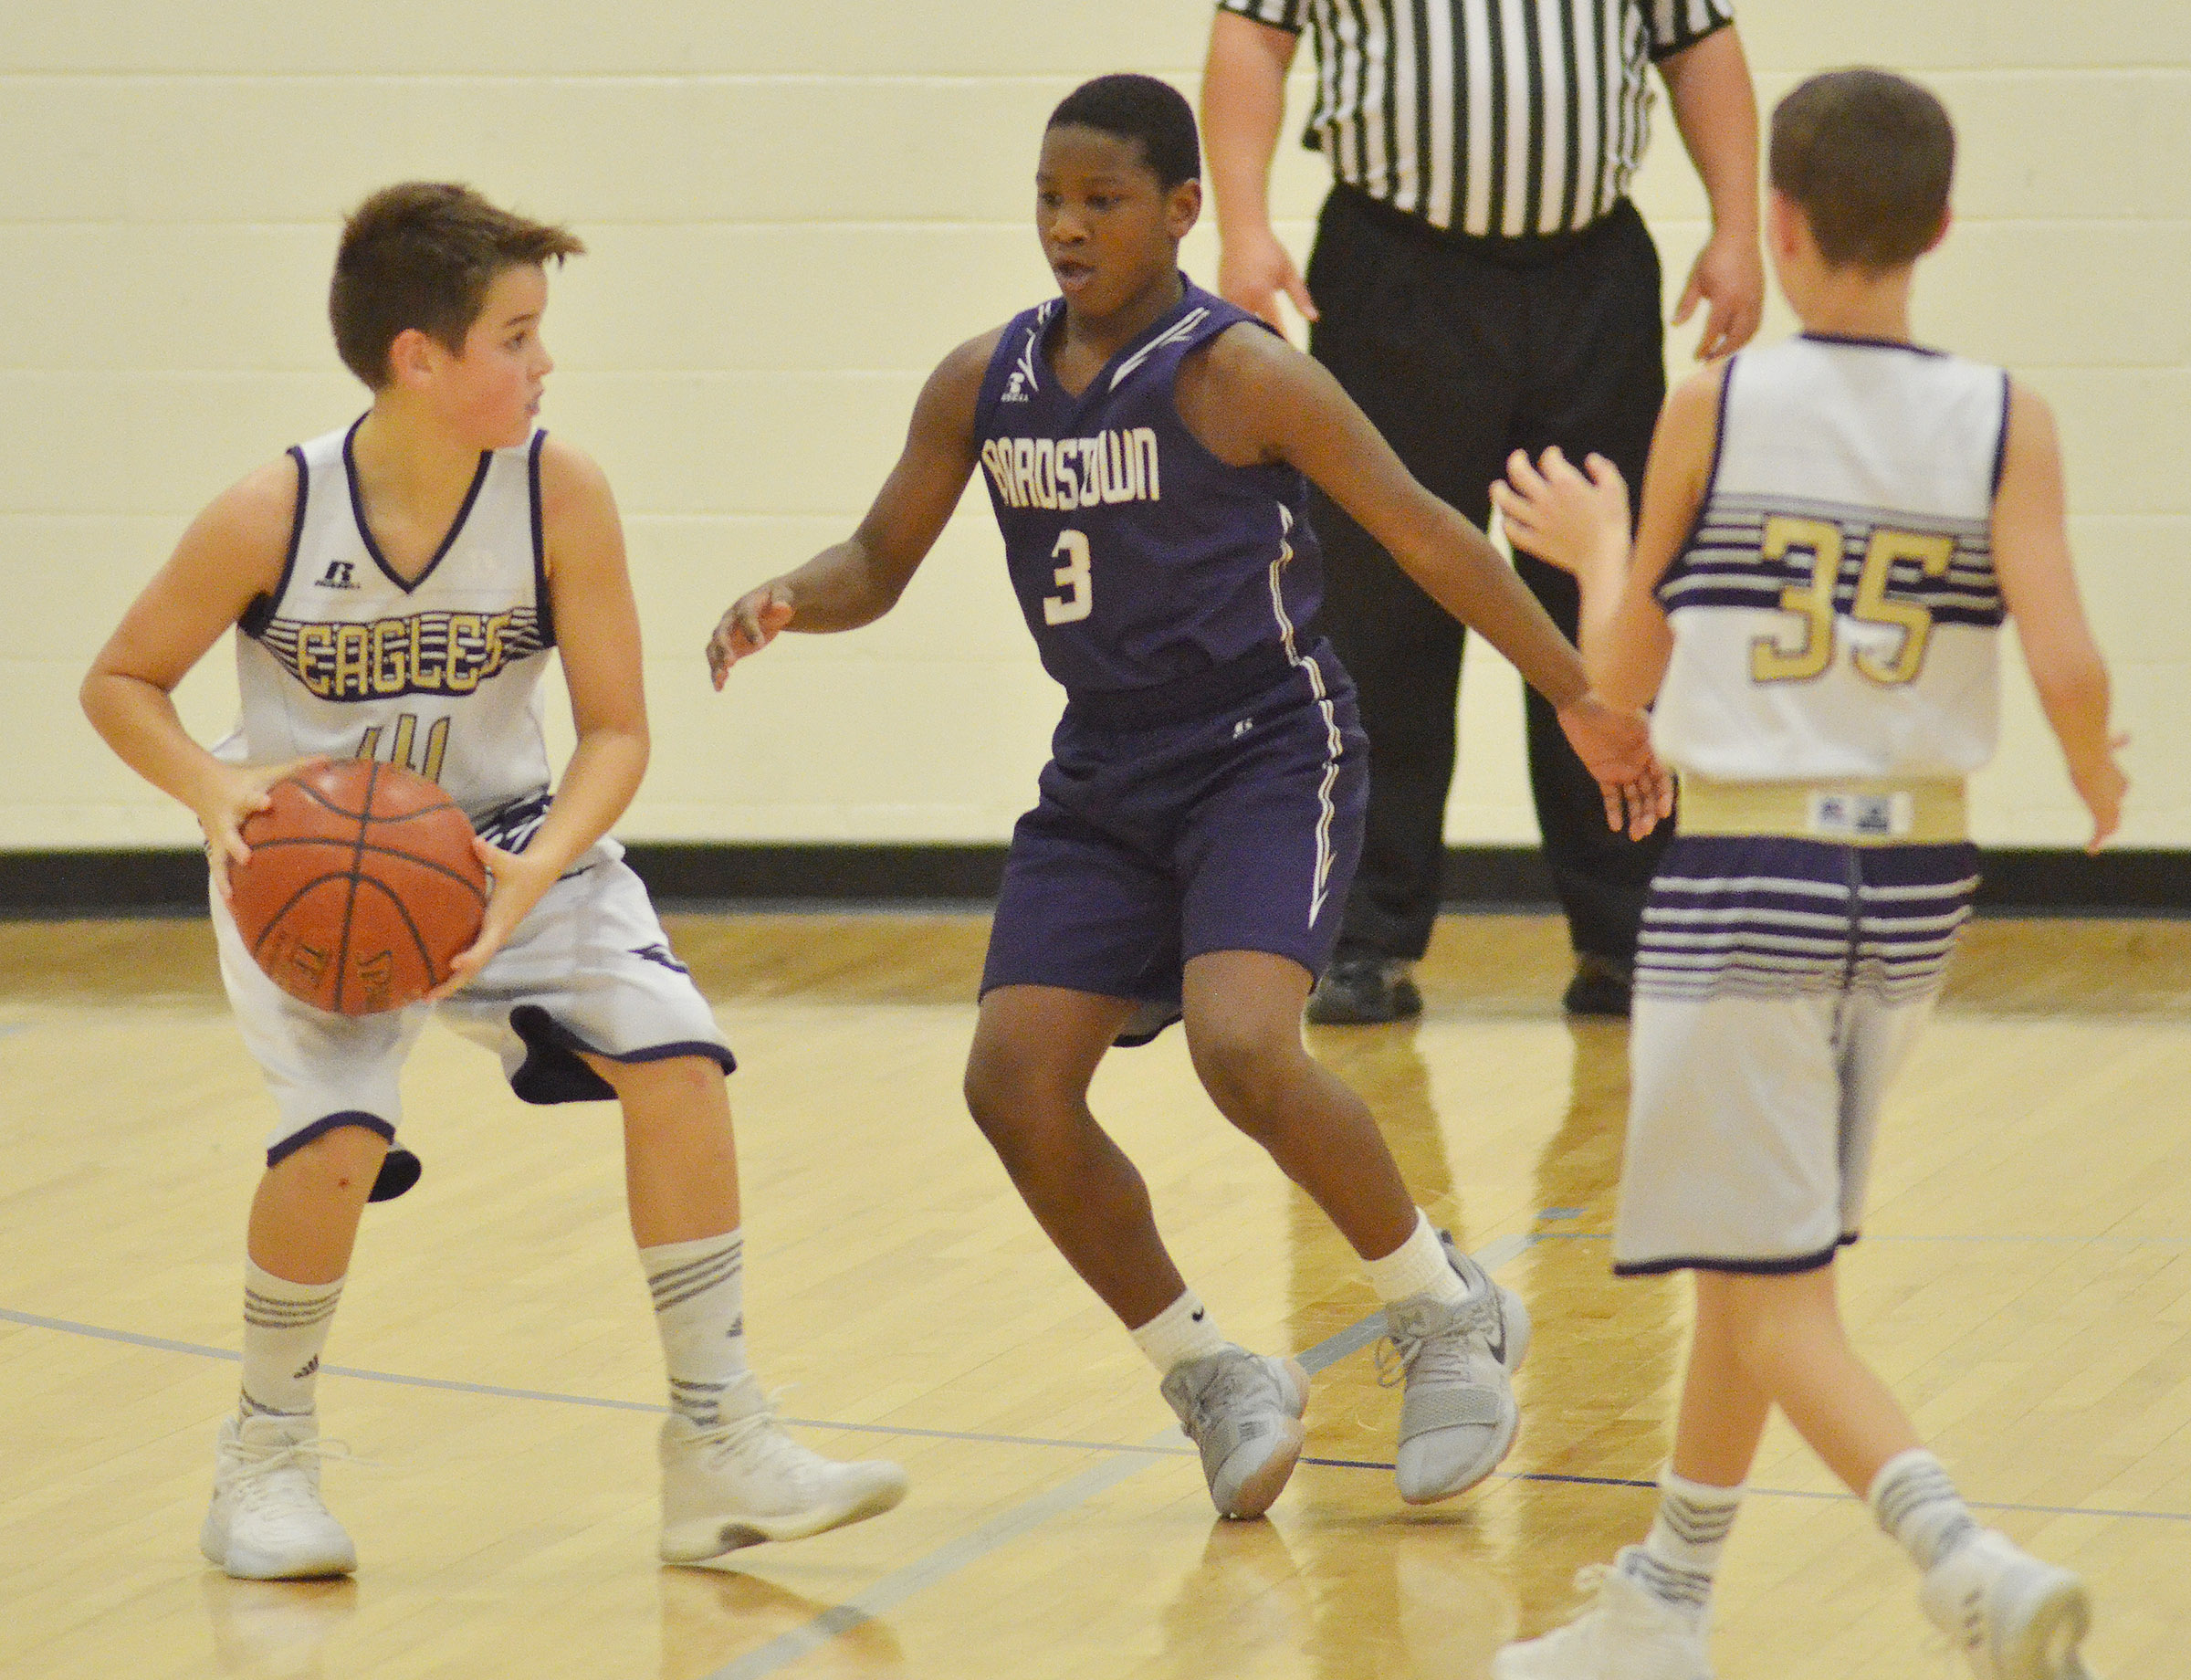 CMS sixth-grader Kaden Bloyd looks to pass.